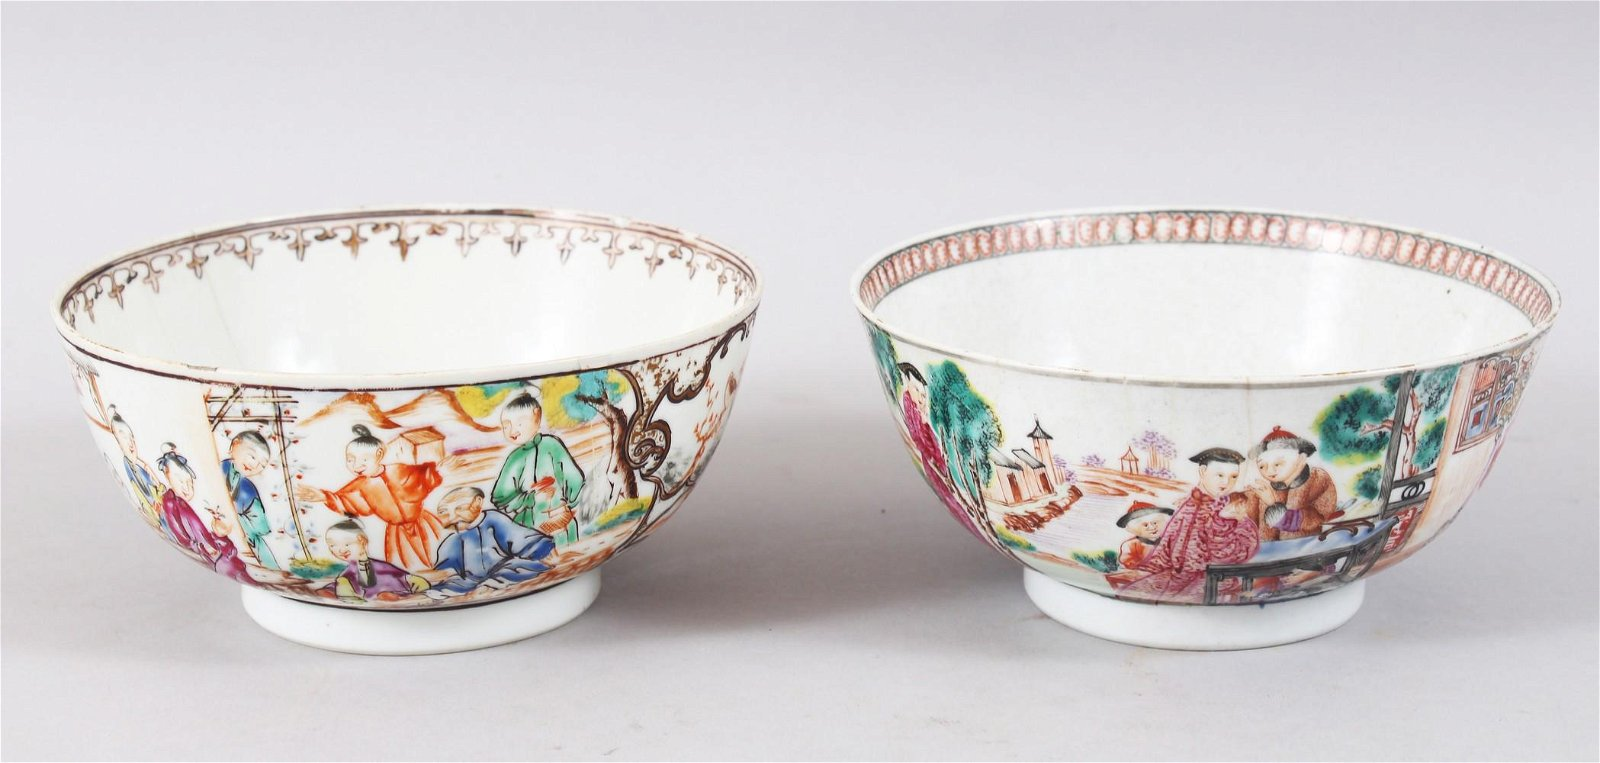 TWO 18TH CENTURY CHINESE FAMILLE ROSE MANDARIN